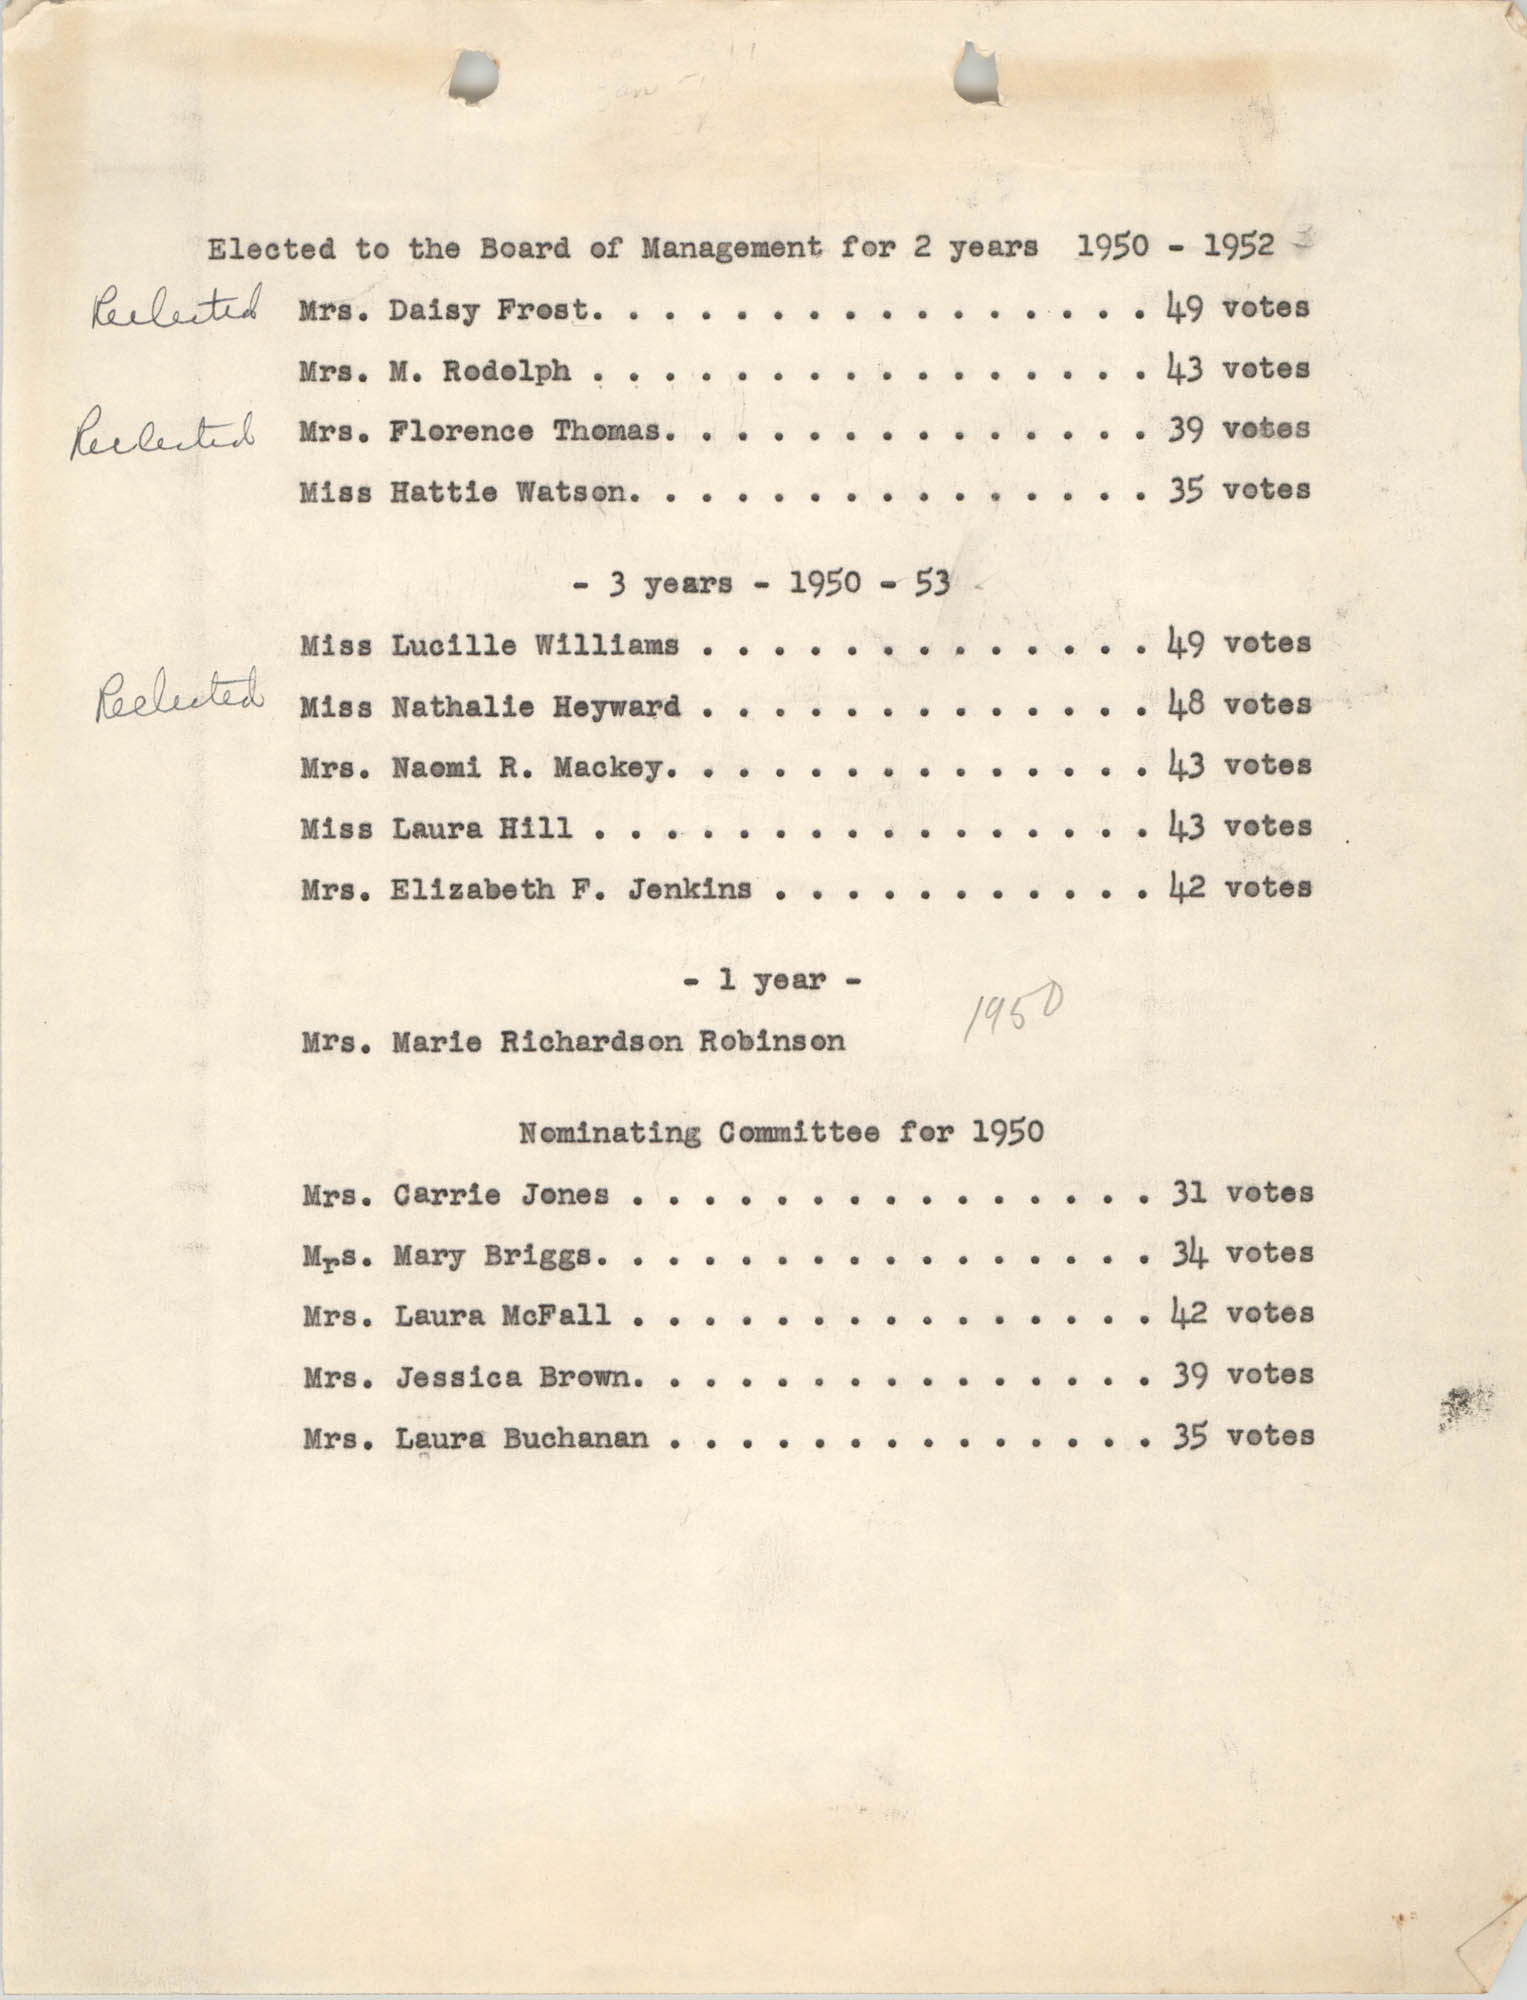 Y.W.C.A. Voting Results for 1950 Election